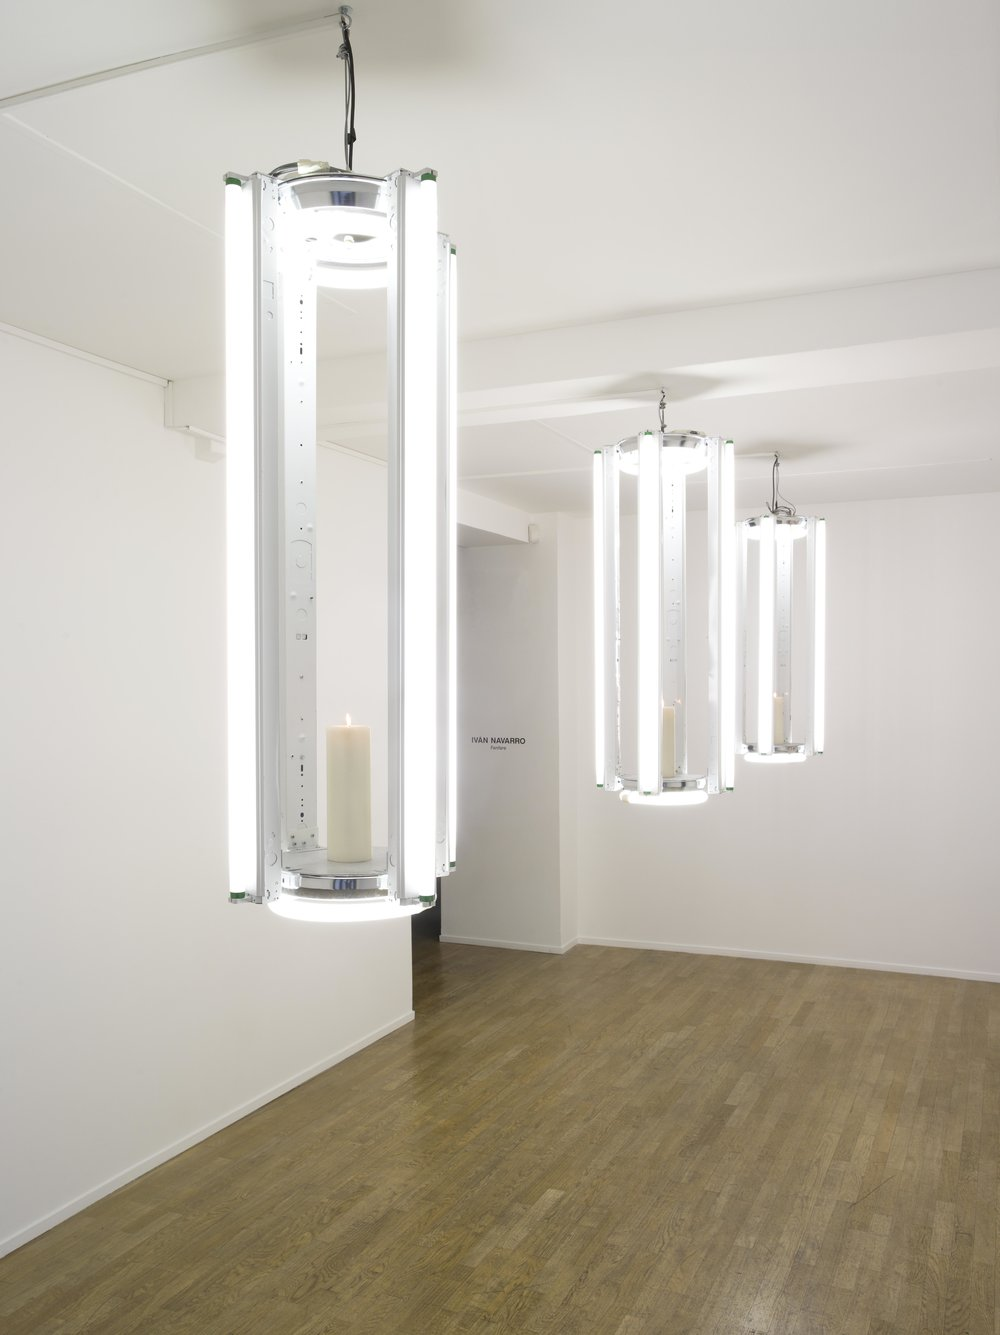 Chandelier (Nadie Sabe Para Quien Trabaja), 2014  Fluorescent light, fixture, candle and electric energy  48 x 127 cm / 19 x 50 in.  Edition of 5  Photo : Thelma Garcia  Courtesy Galerie Daniel Templon, Paris and Bruxelles.